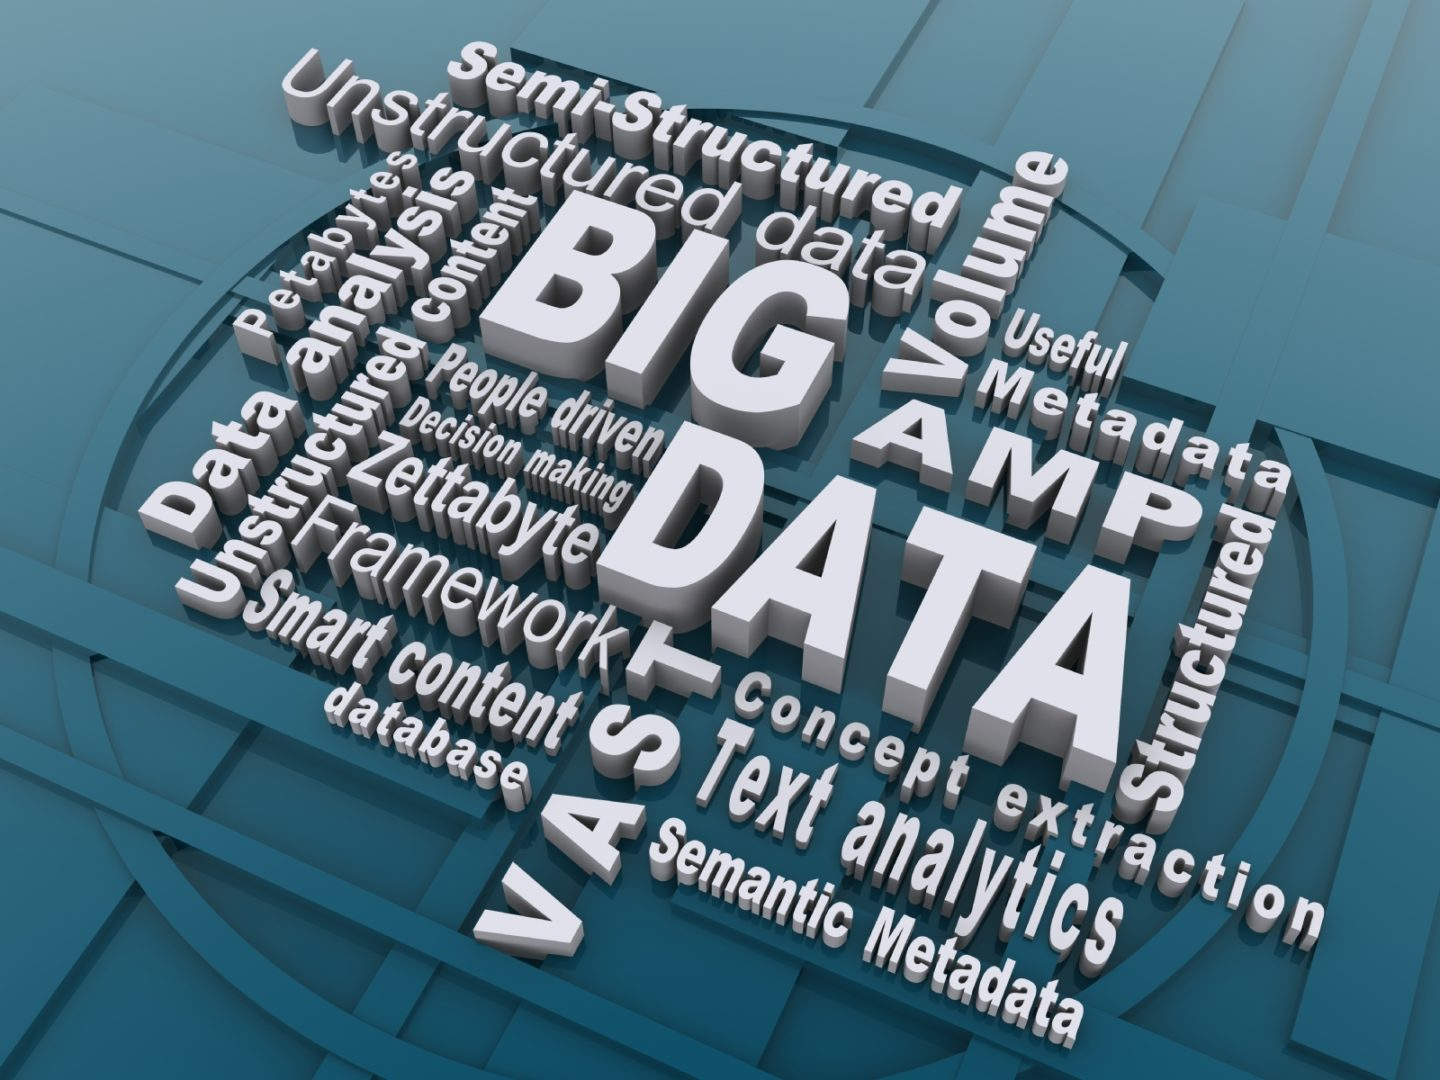 Big Data logistica